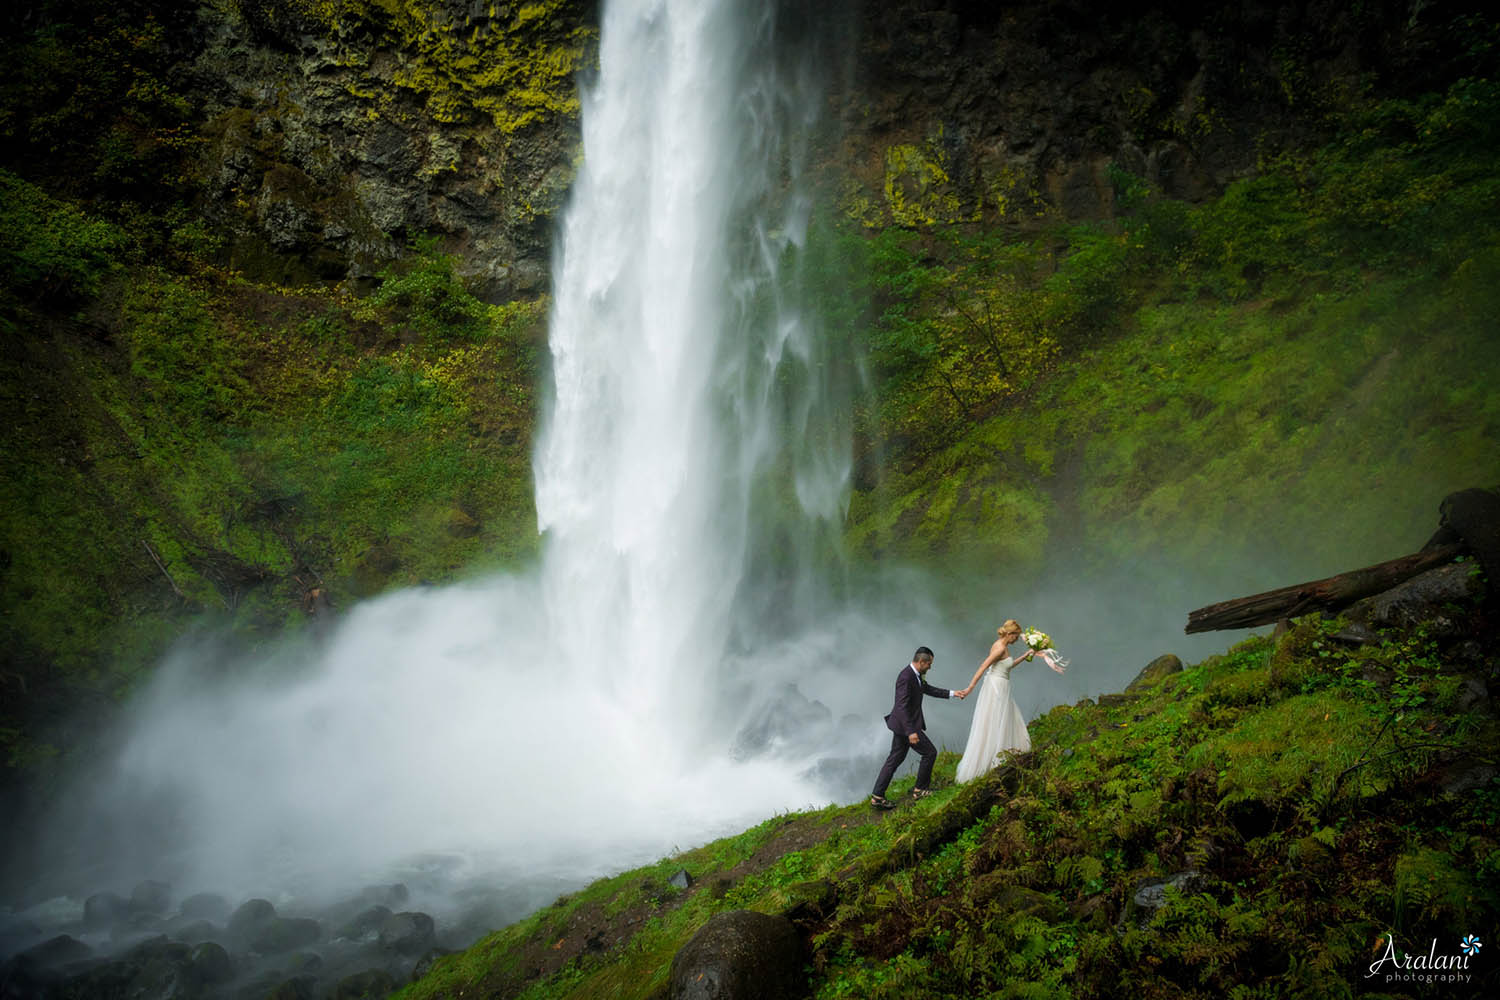 A bride and groom climb up a rocky hill as a massive waterfall pours down behind them (by Aralani Photography)